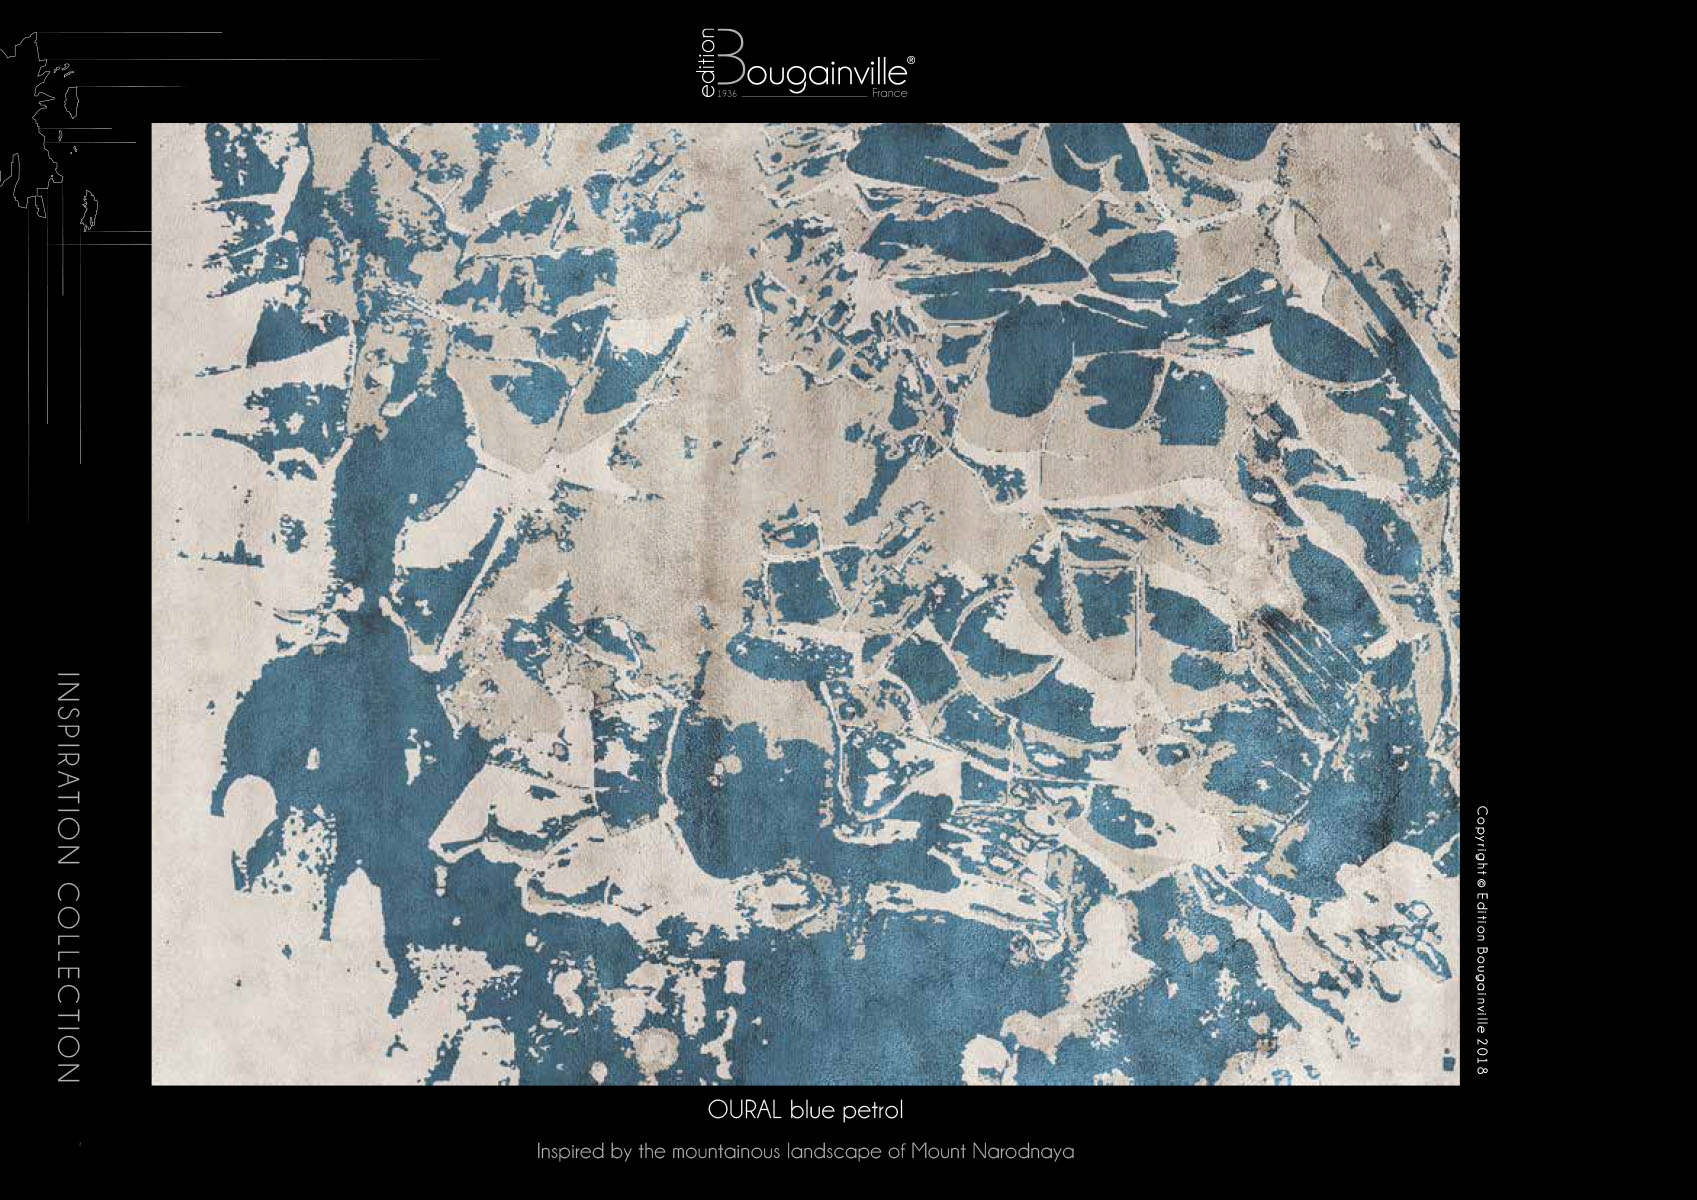 Ковер Edition Bougainville, OURAL blue petrol